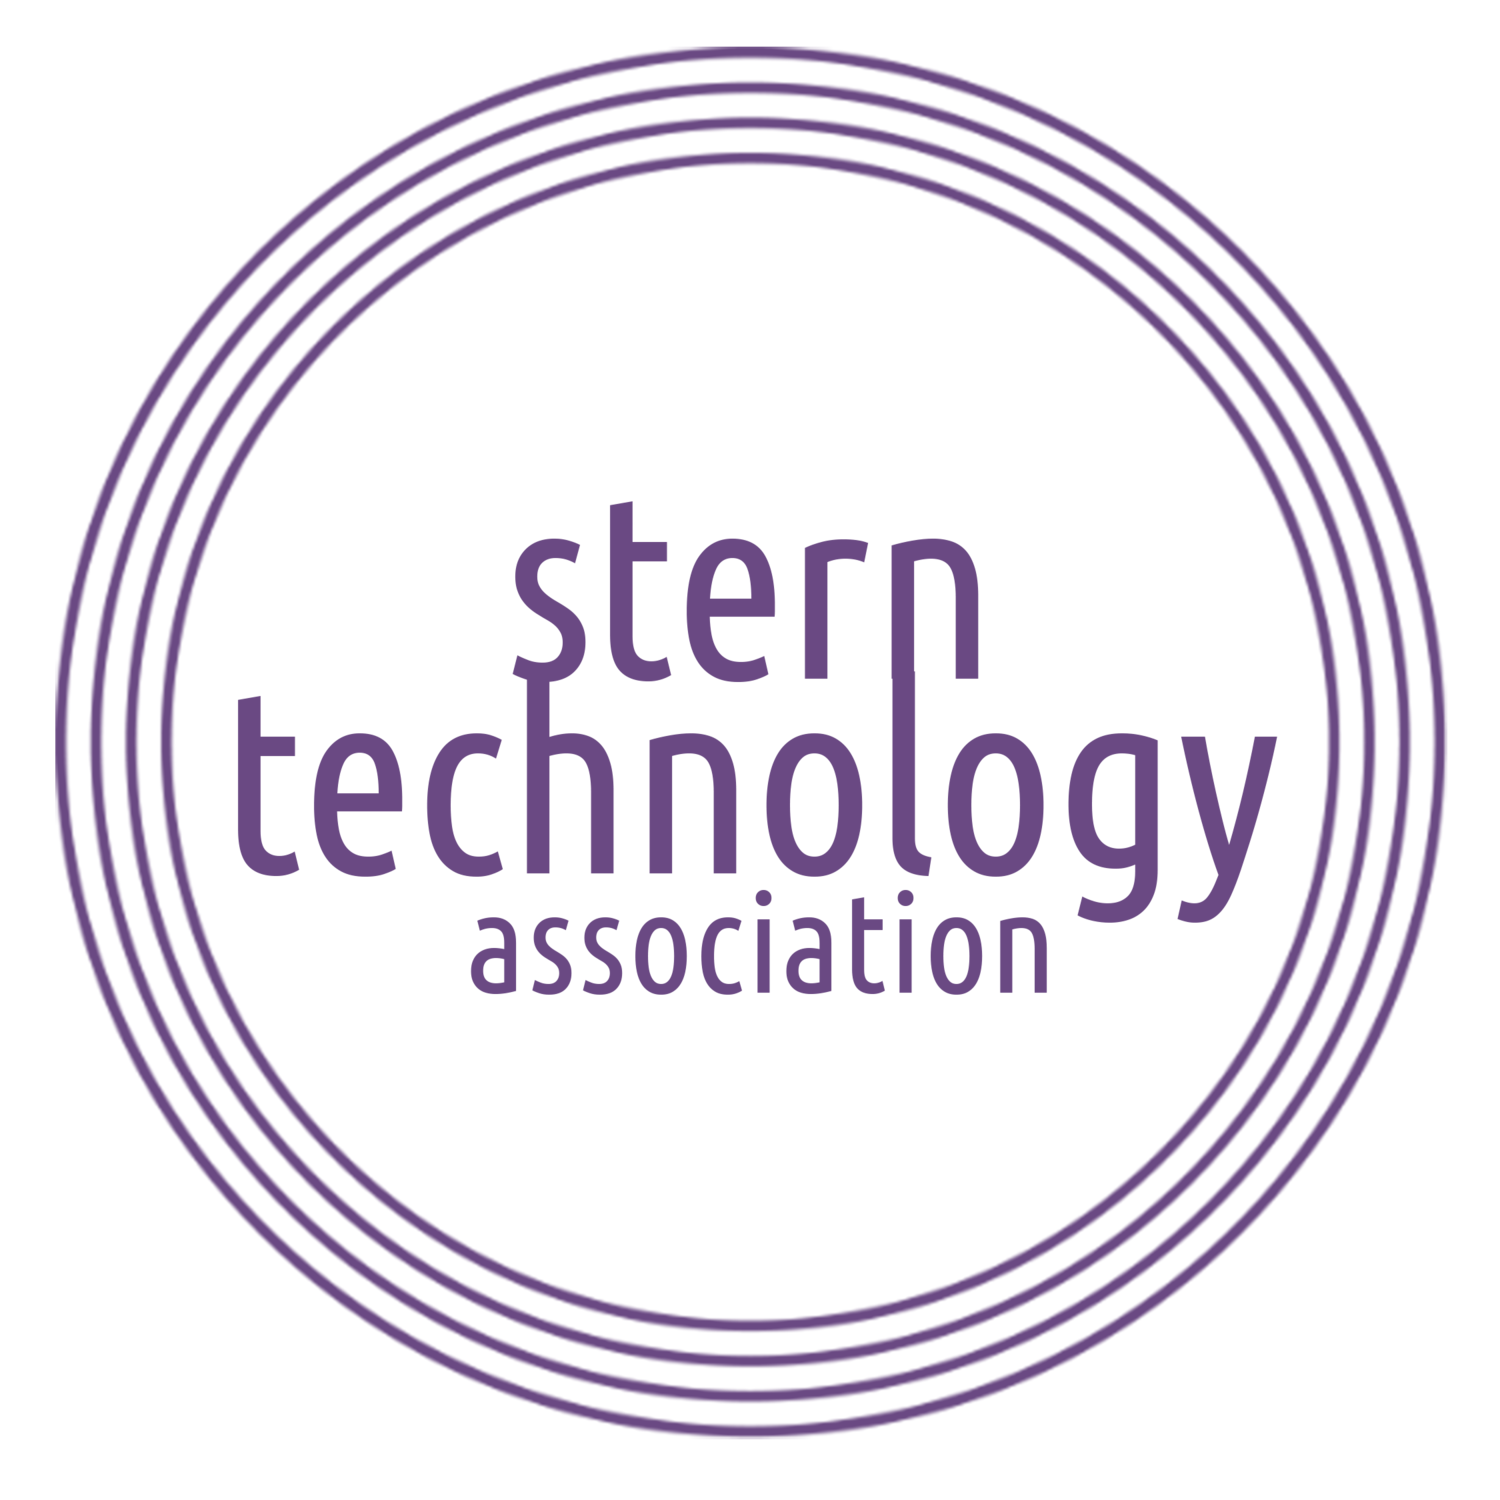 Stern Technology Association